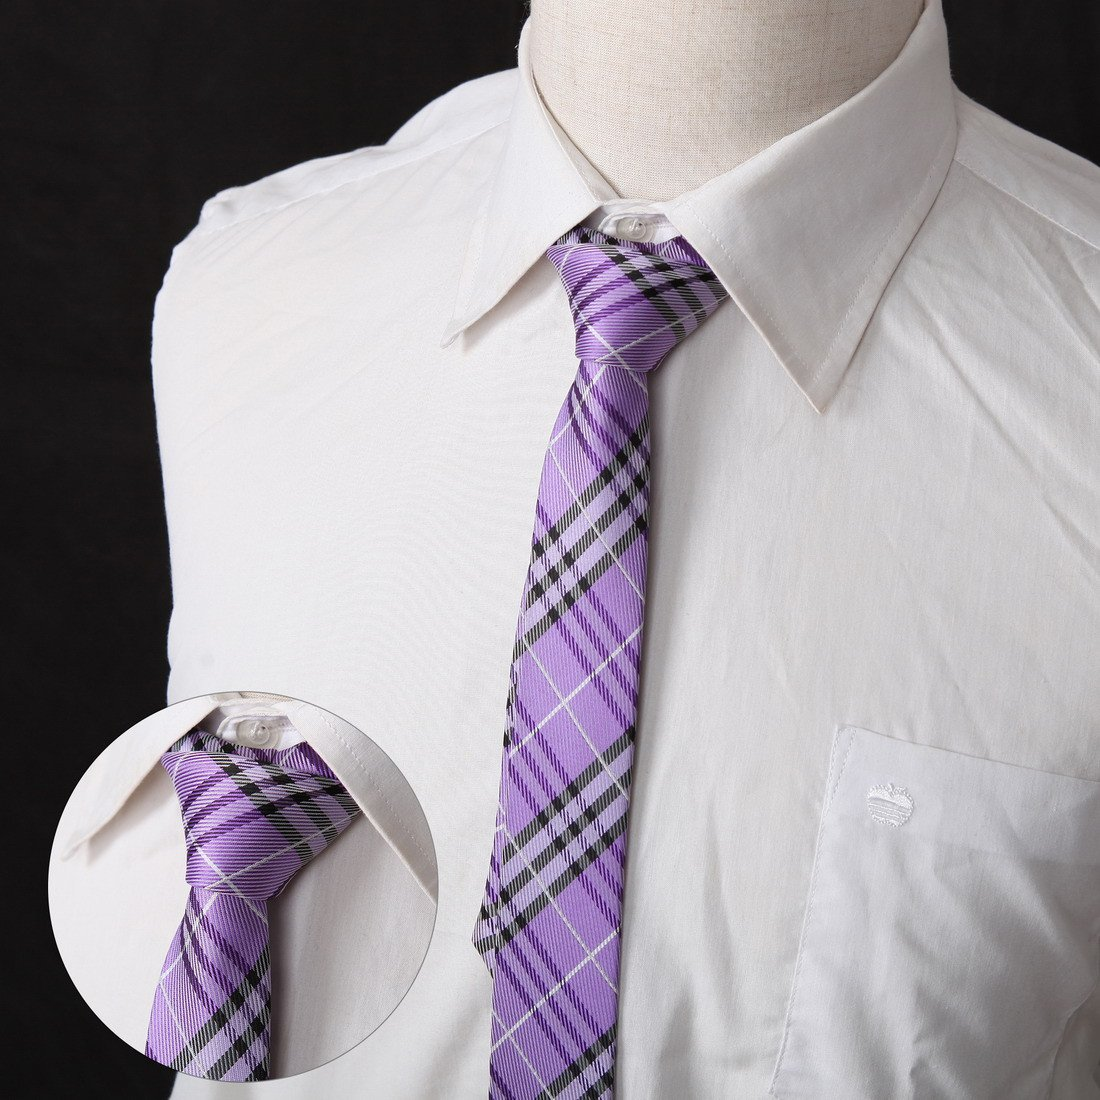 DANF0039 Series Colors 5cm-width Polyester Slim Ties Creative Fashion Skinny Ties - 5 Styles Available Inspire For Business By Dan Smith by Dan Smith (Image #2)